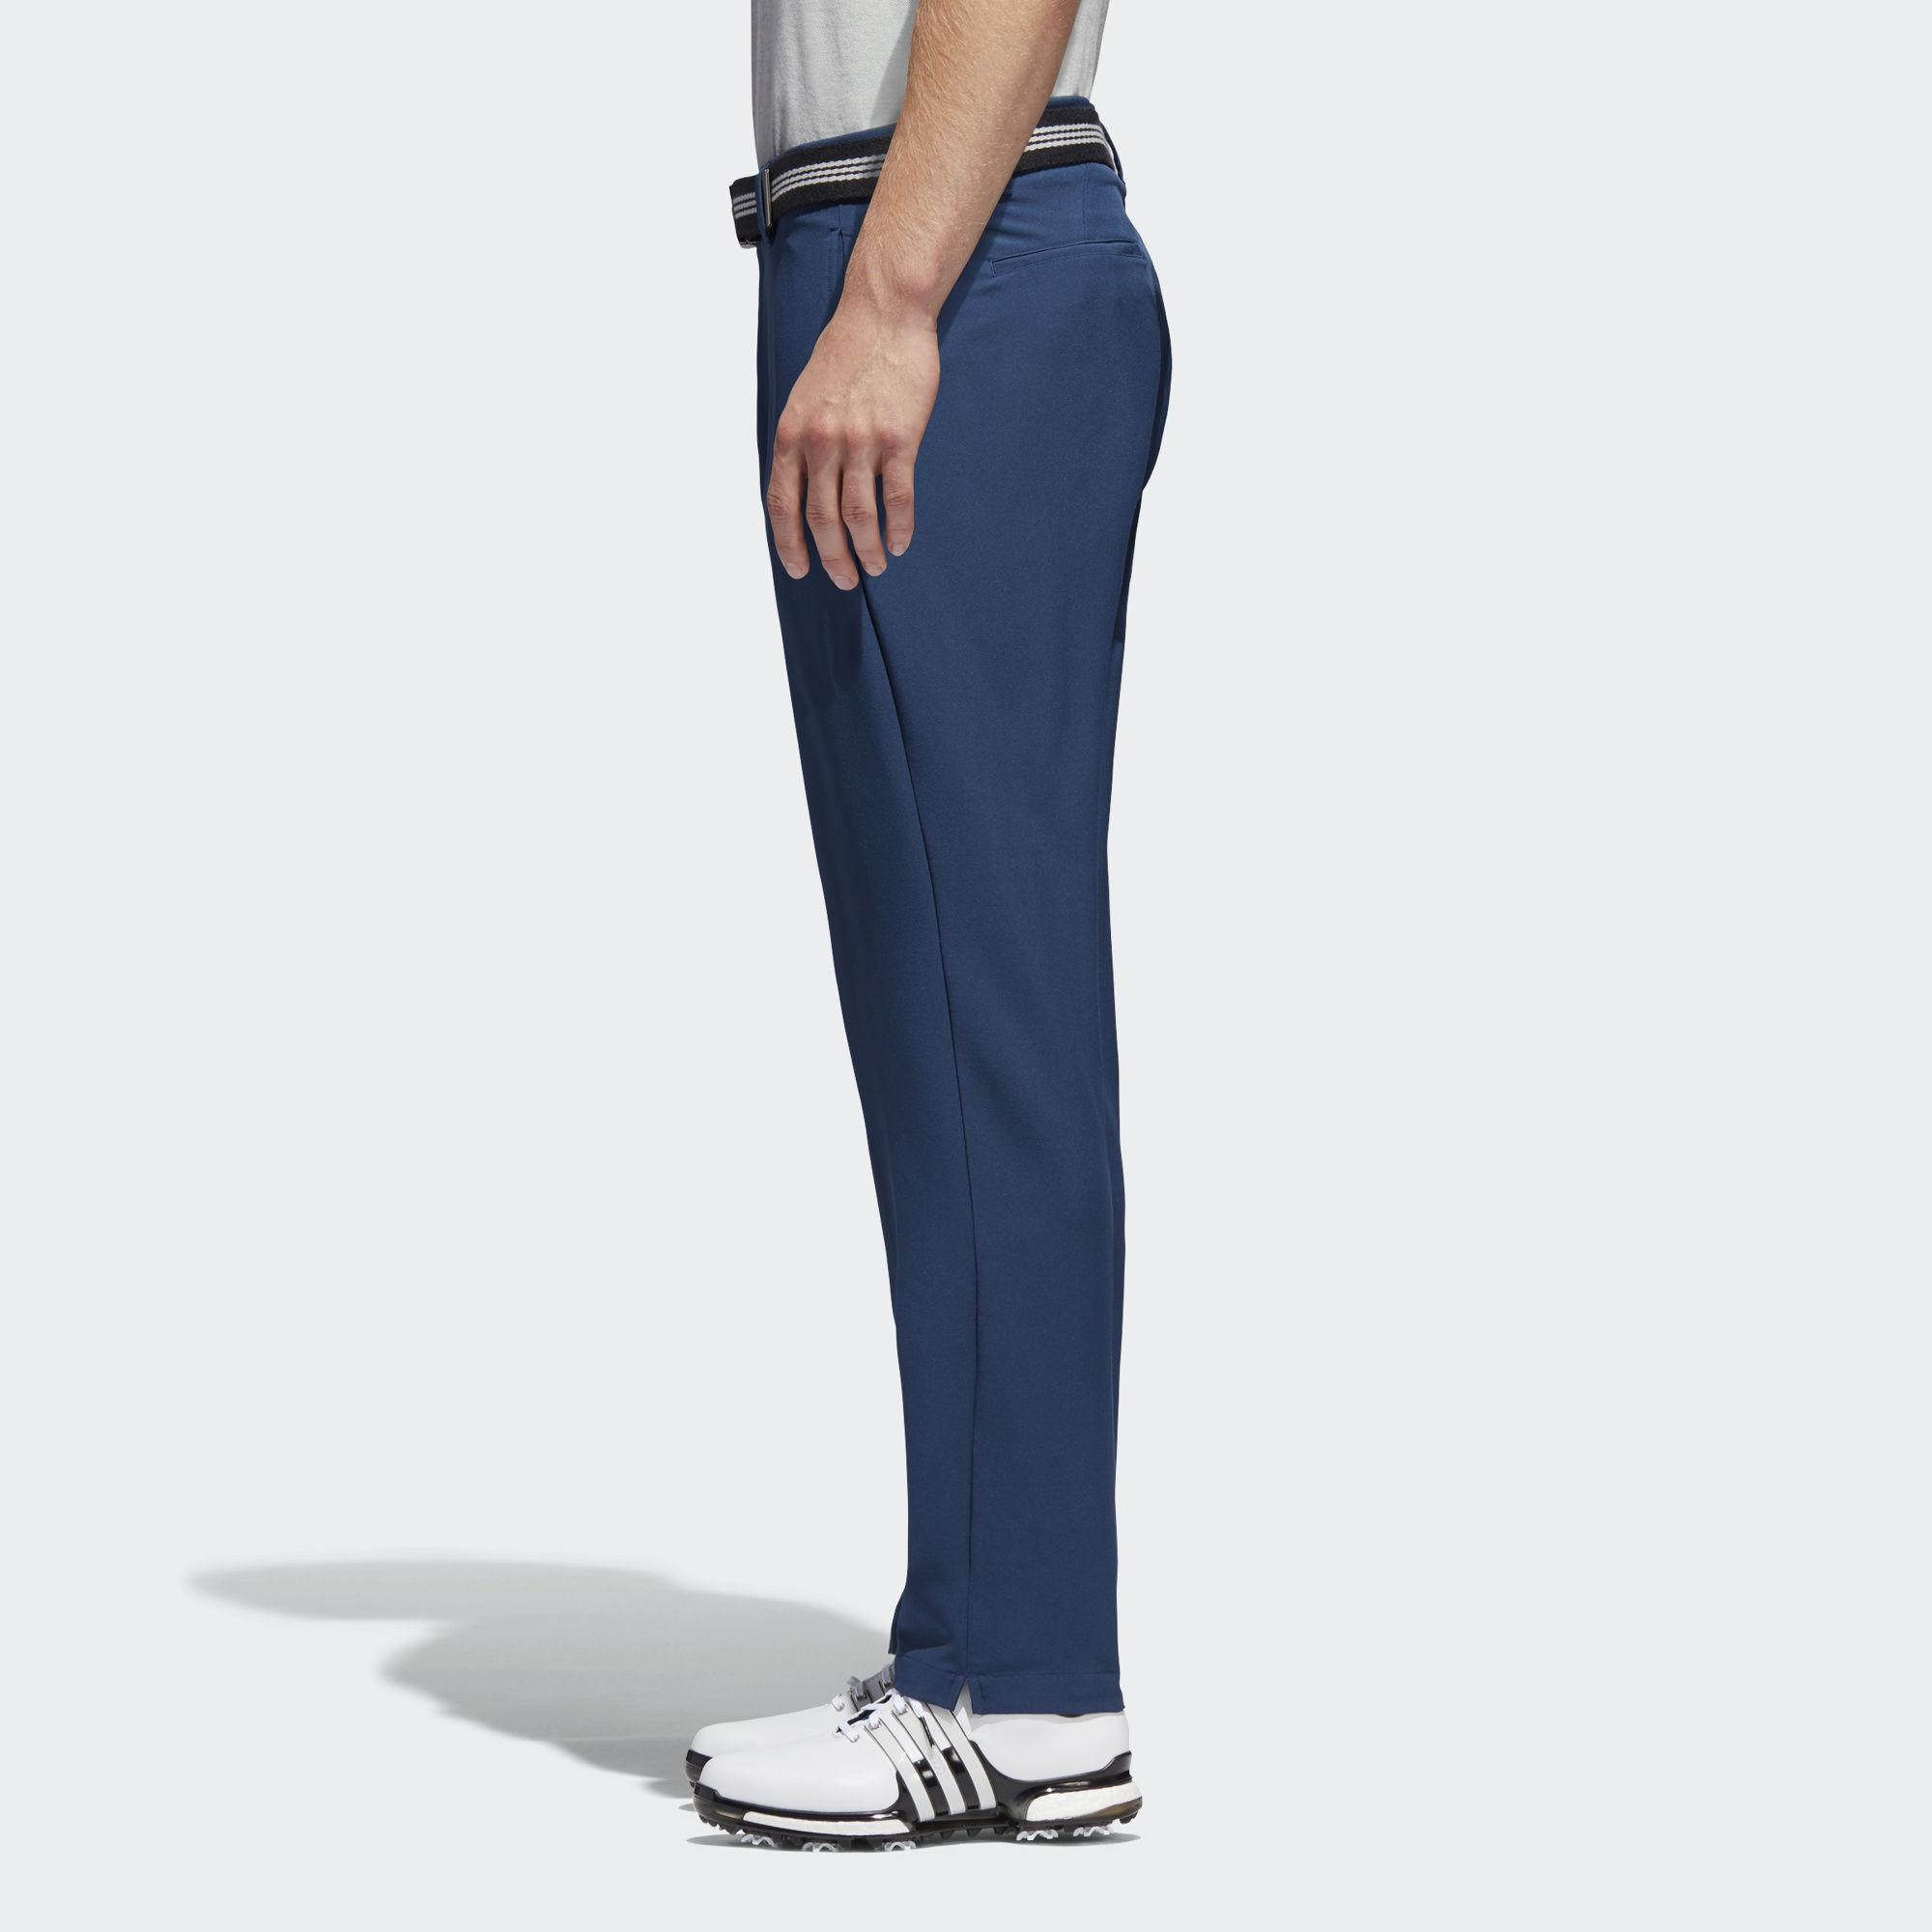 save off 2841a 08ff9 Lyst - adidas Ultimate 365 3-stripes Pants in Blue for Men